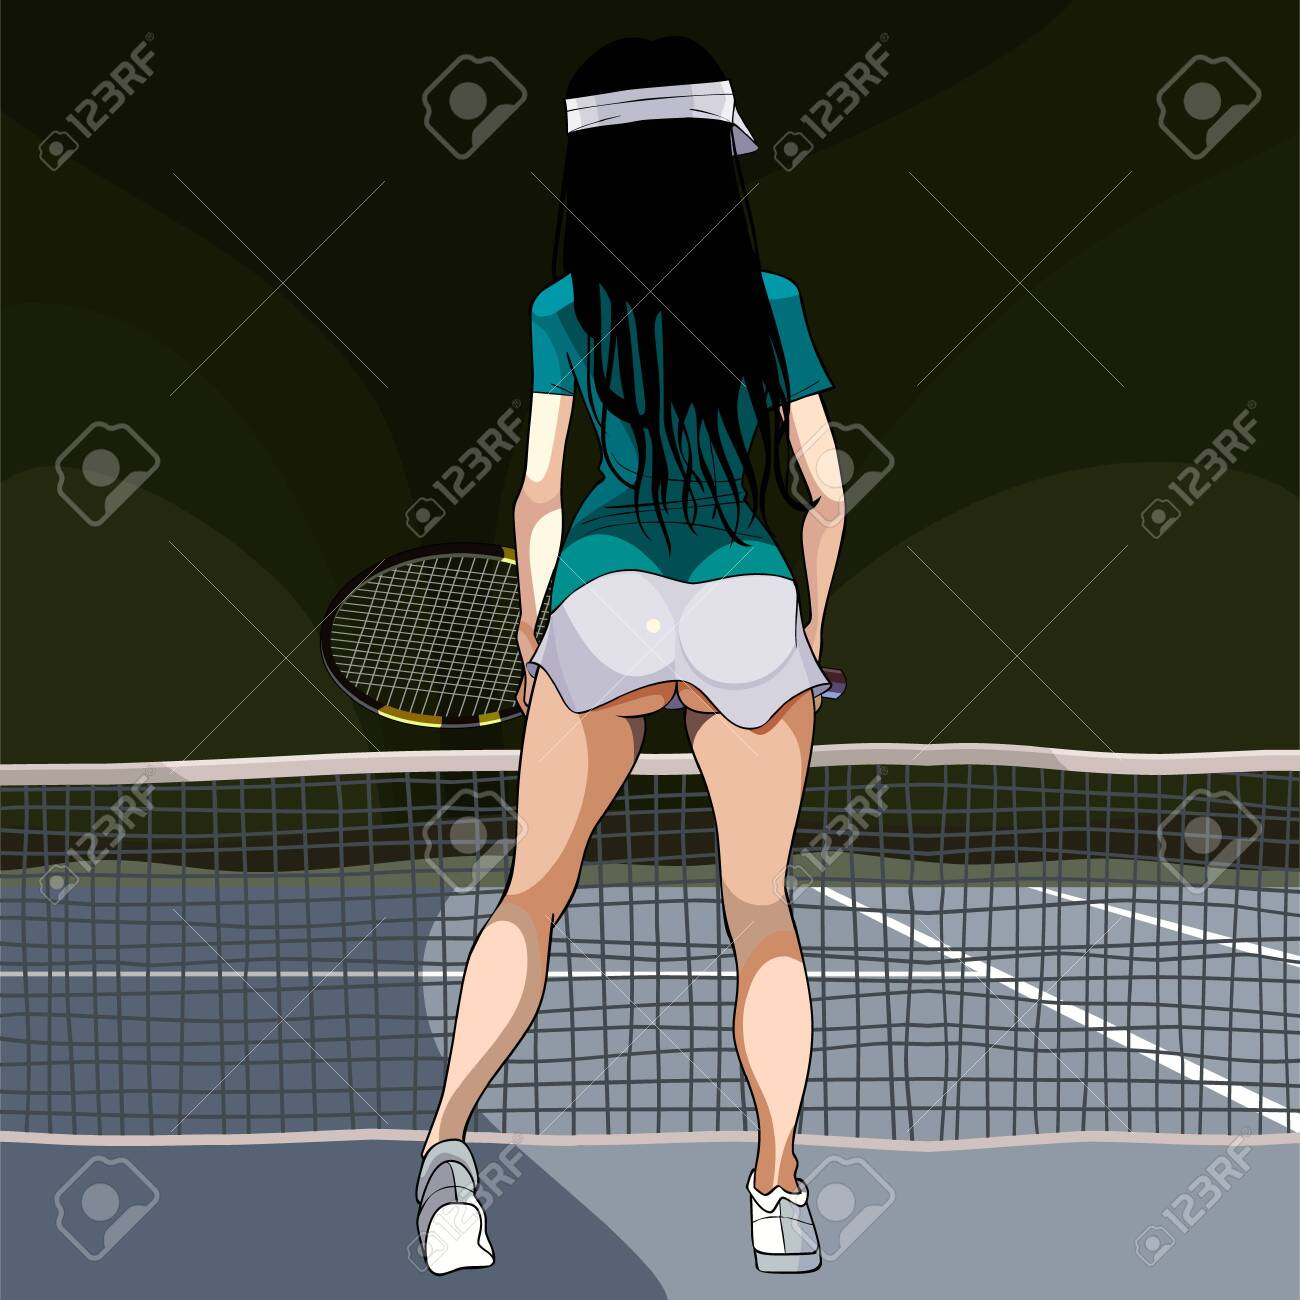 cartoon woman in clothes playing tennis standing back - 122701806